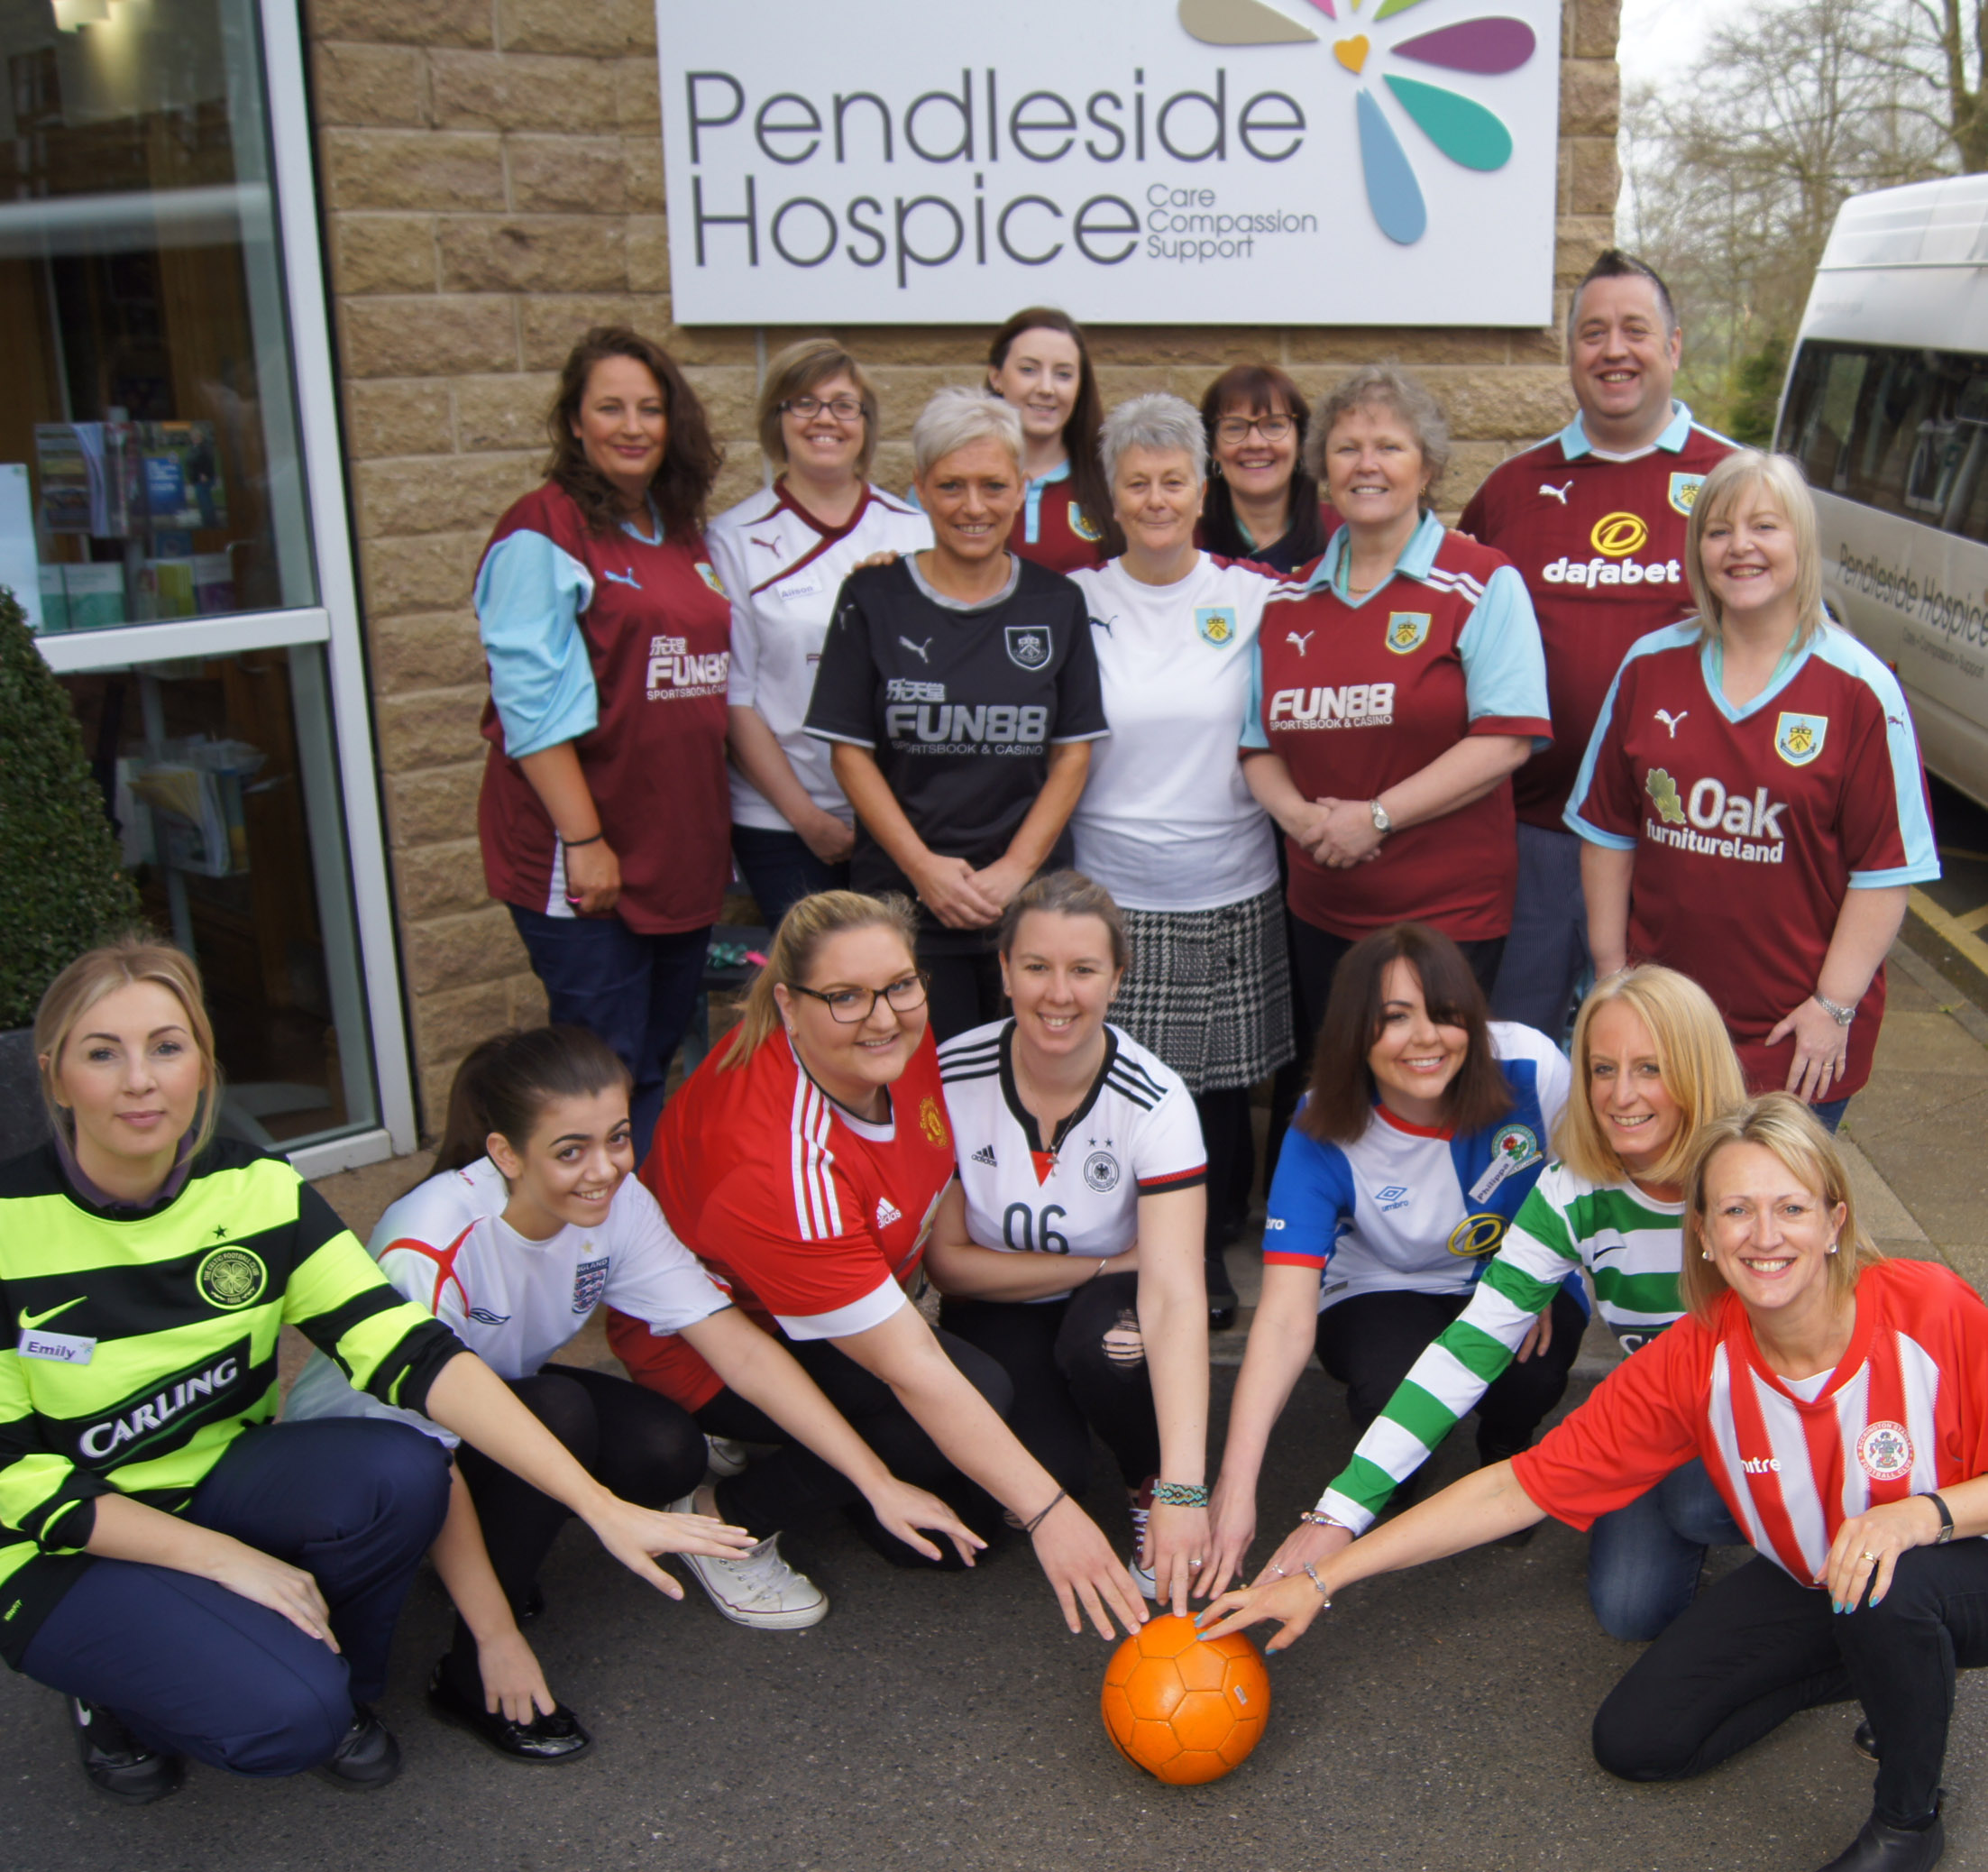 Wear your Shirt to Work day at Pendleside staff & volunteer photo with football